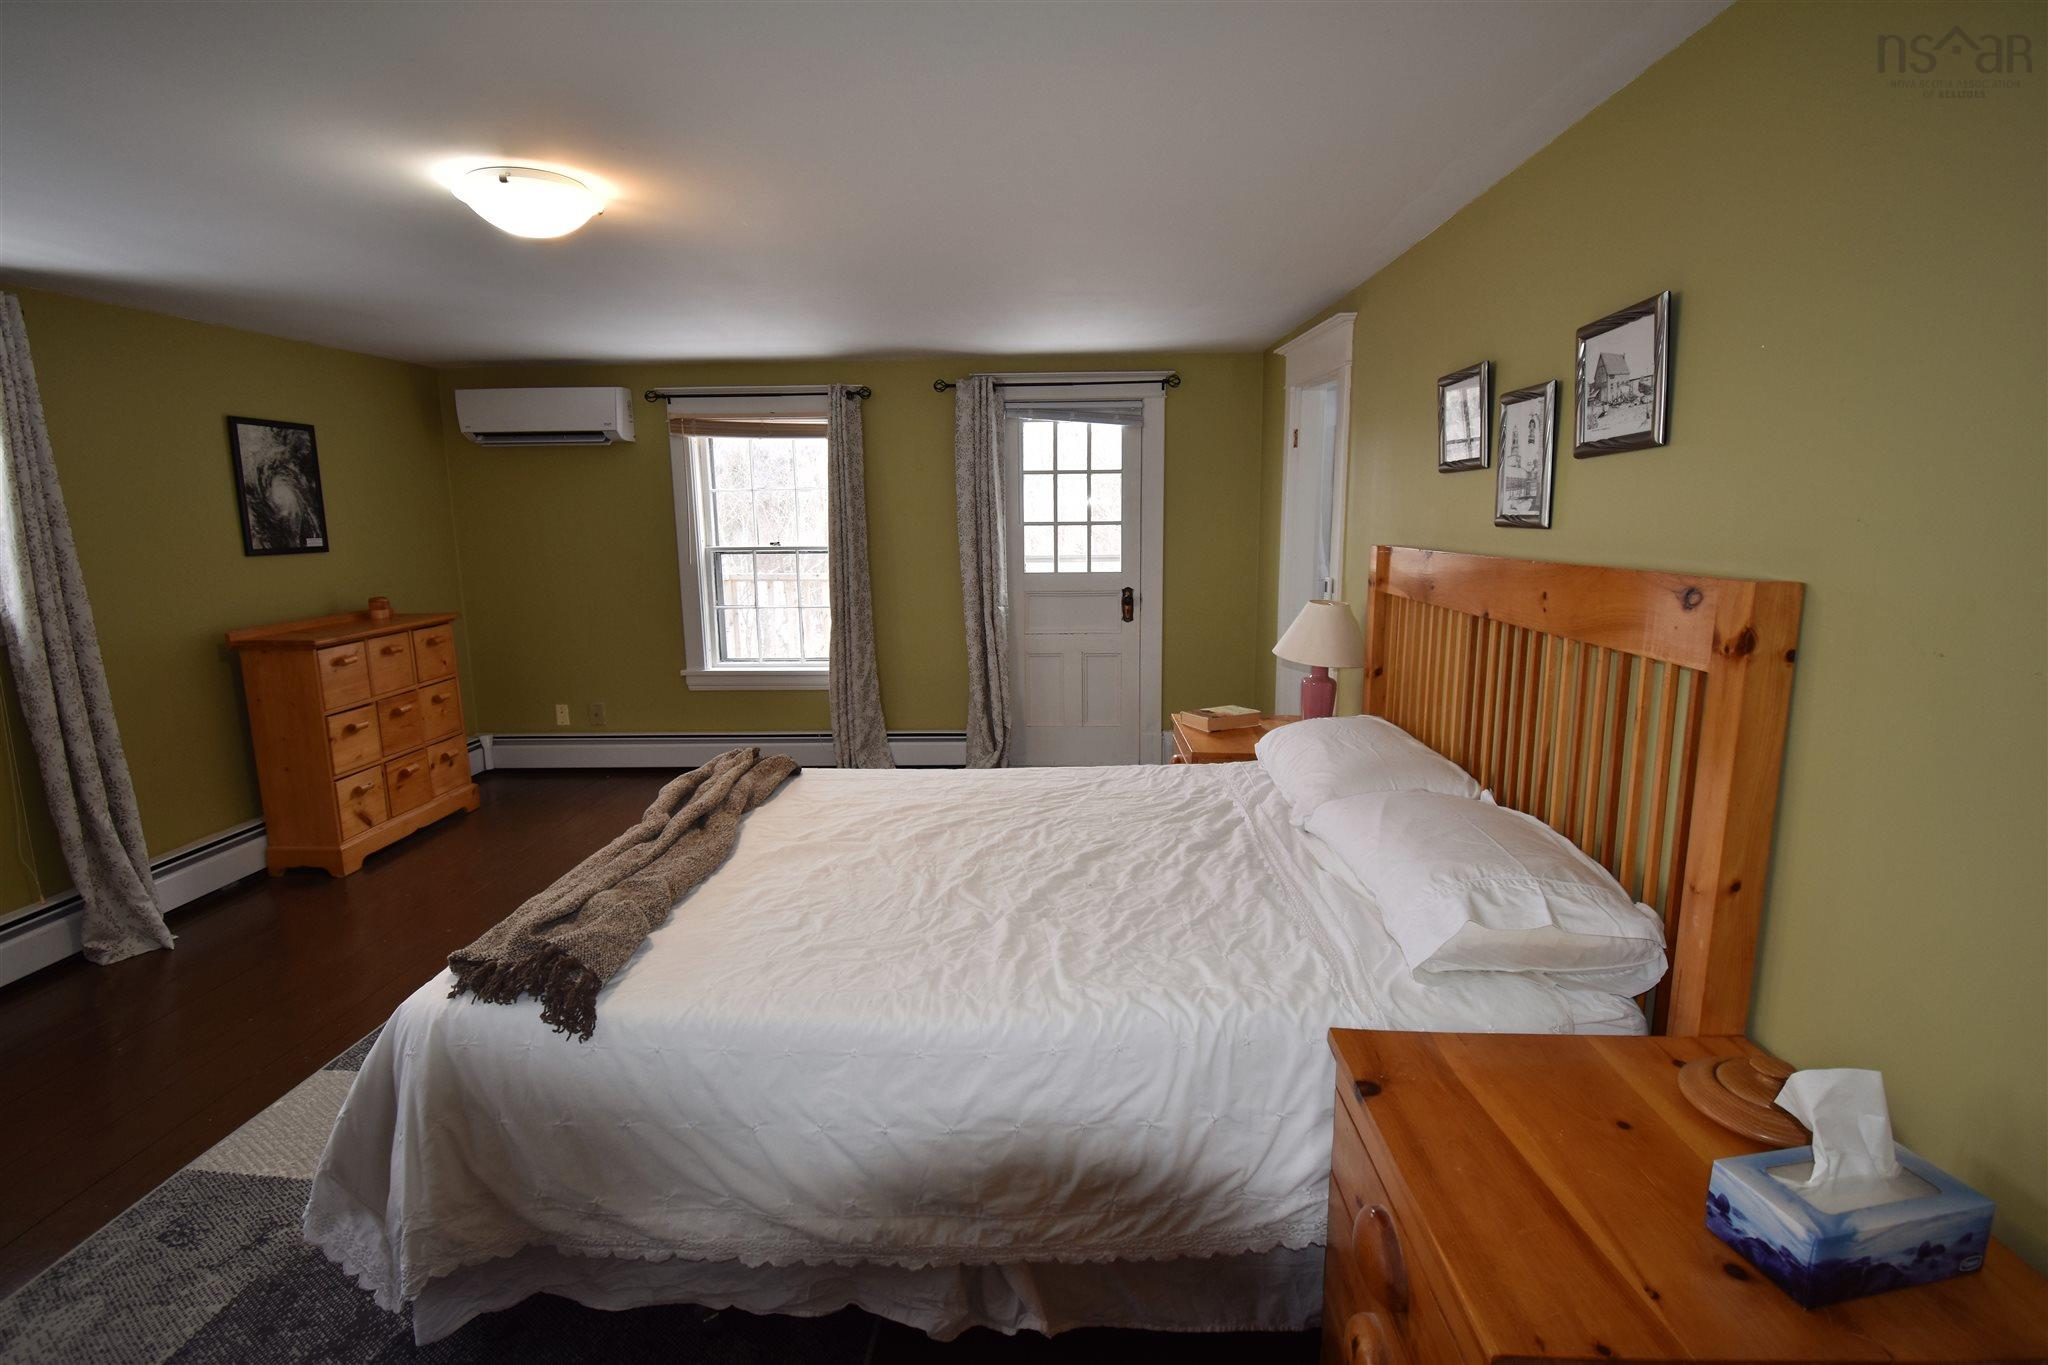 1514 HIGHWAY 1, Clementsport, NS B0S 1E0, 5 Bedrooms Bedrooms, ,3 BathroomsBathrooms,For Sale,1514 HIGHWAY 1,202103096